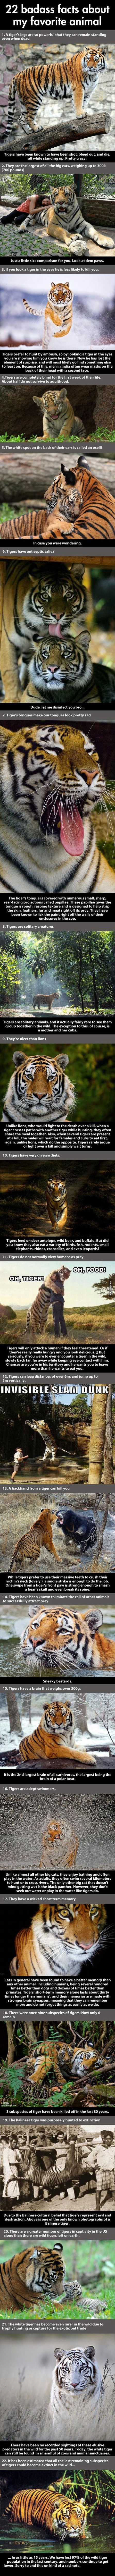 the 25 best facts about tigers ideas on pinterest tiger facts